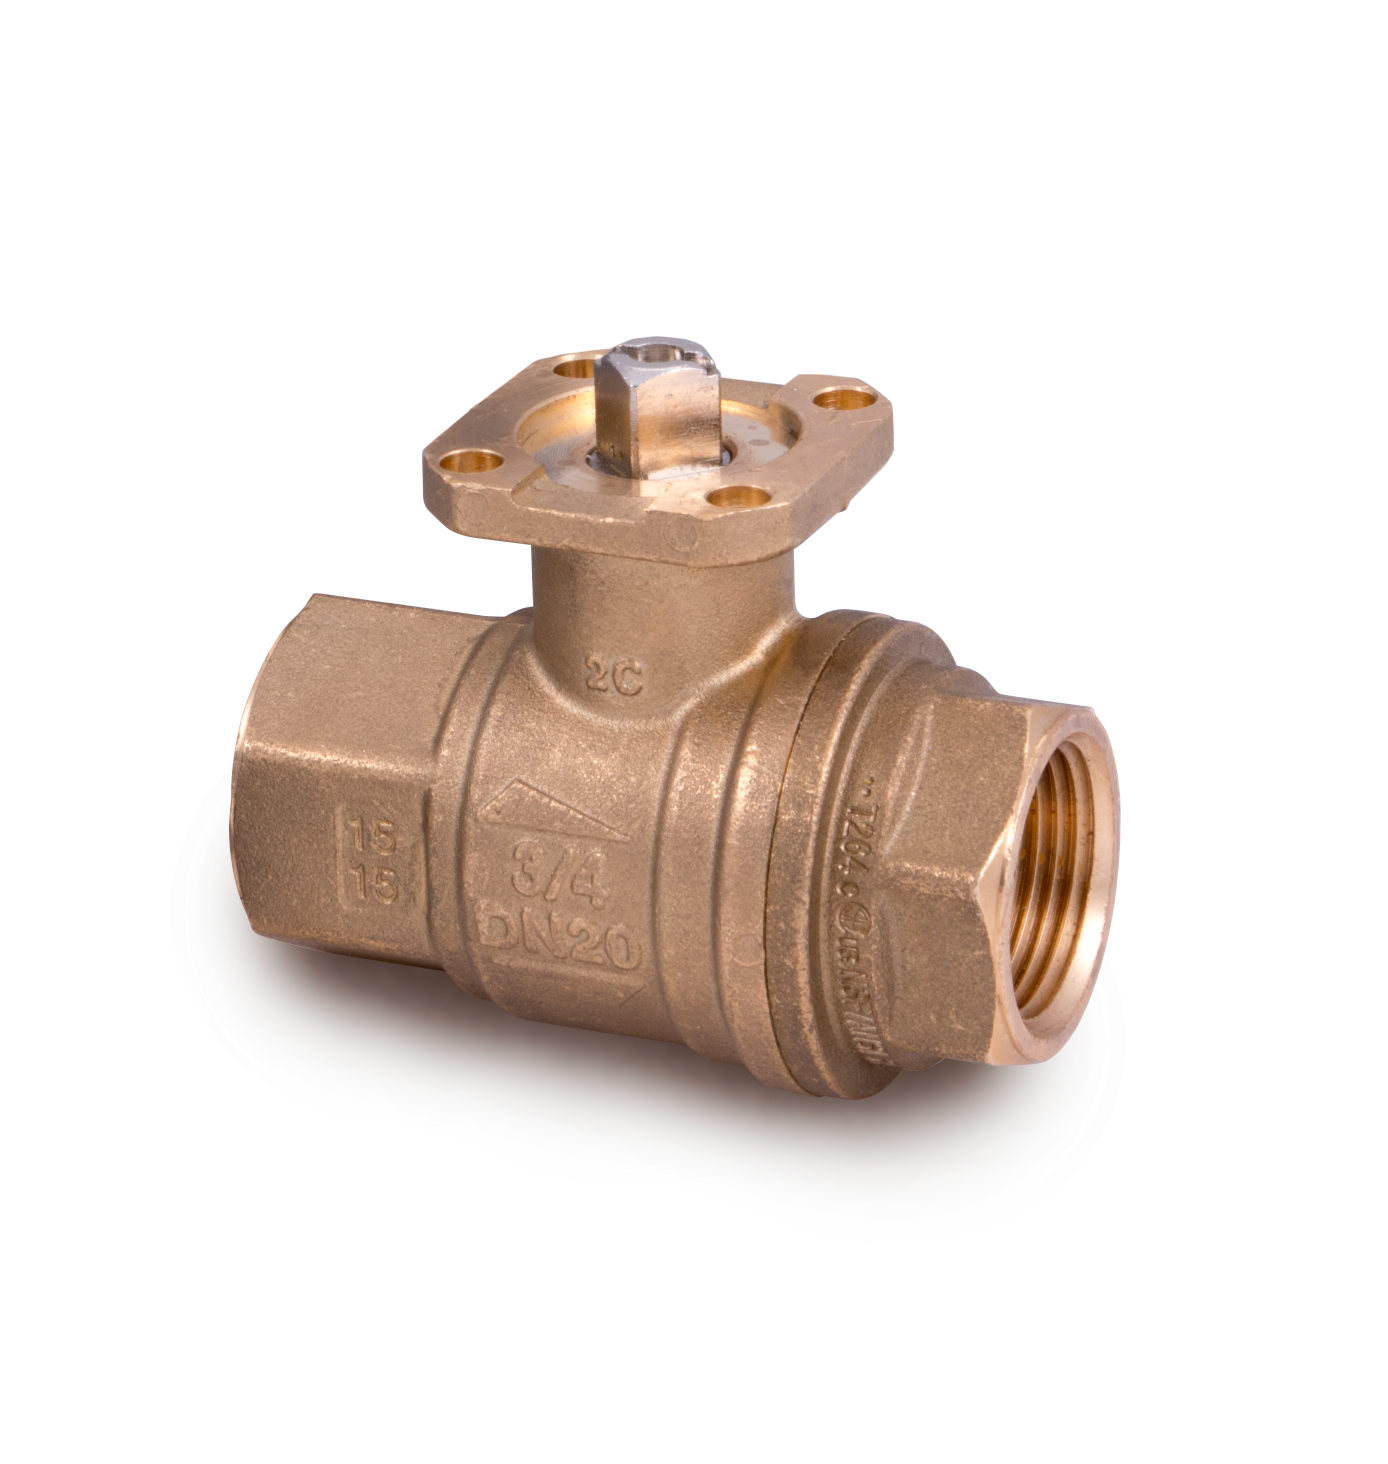 Ball Valve for Wally Shutoff Valve